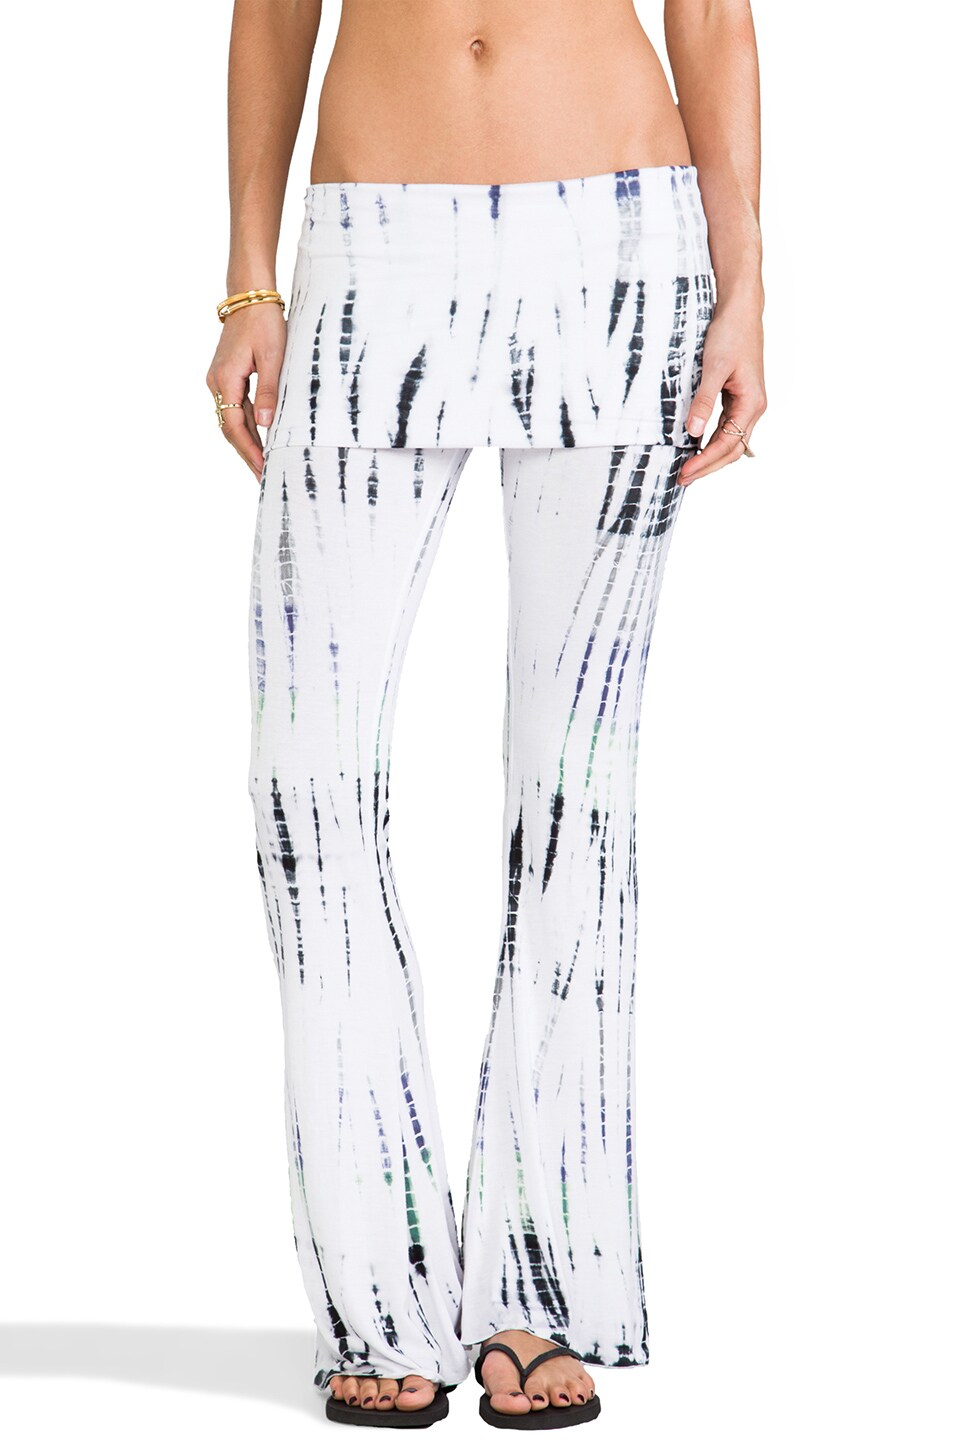 Indah Ainslie Flare Lounge Pant in Fade Streak Green Mix